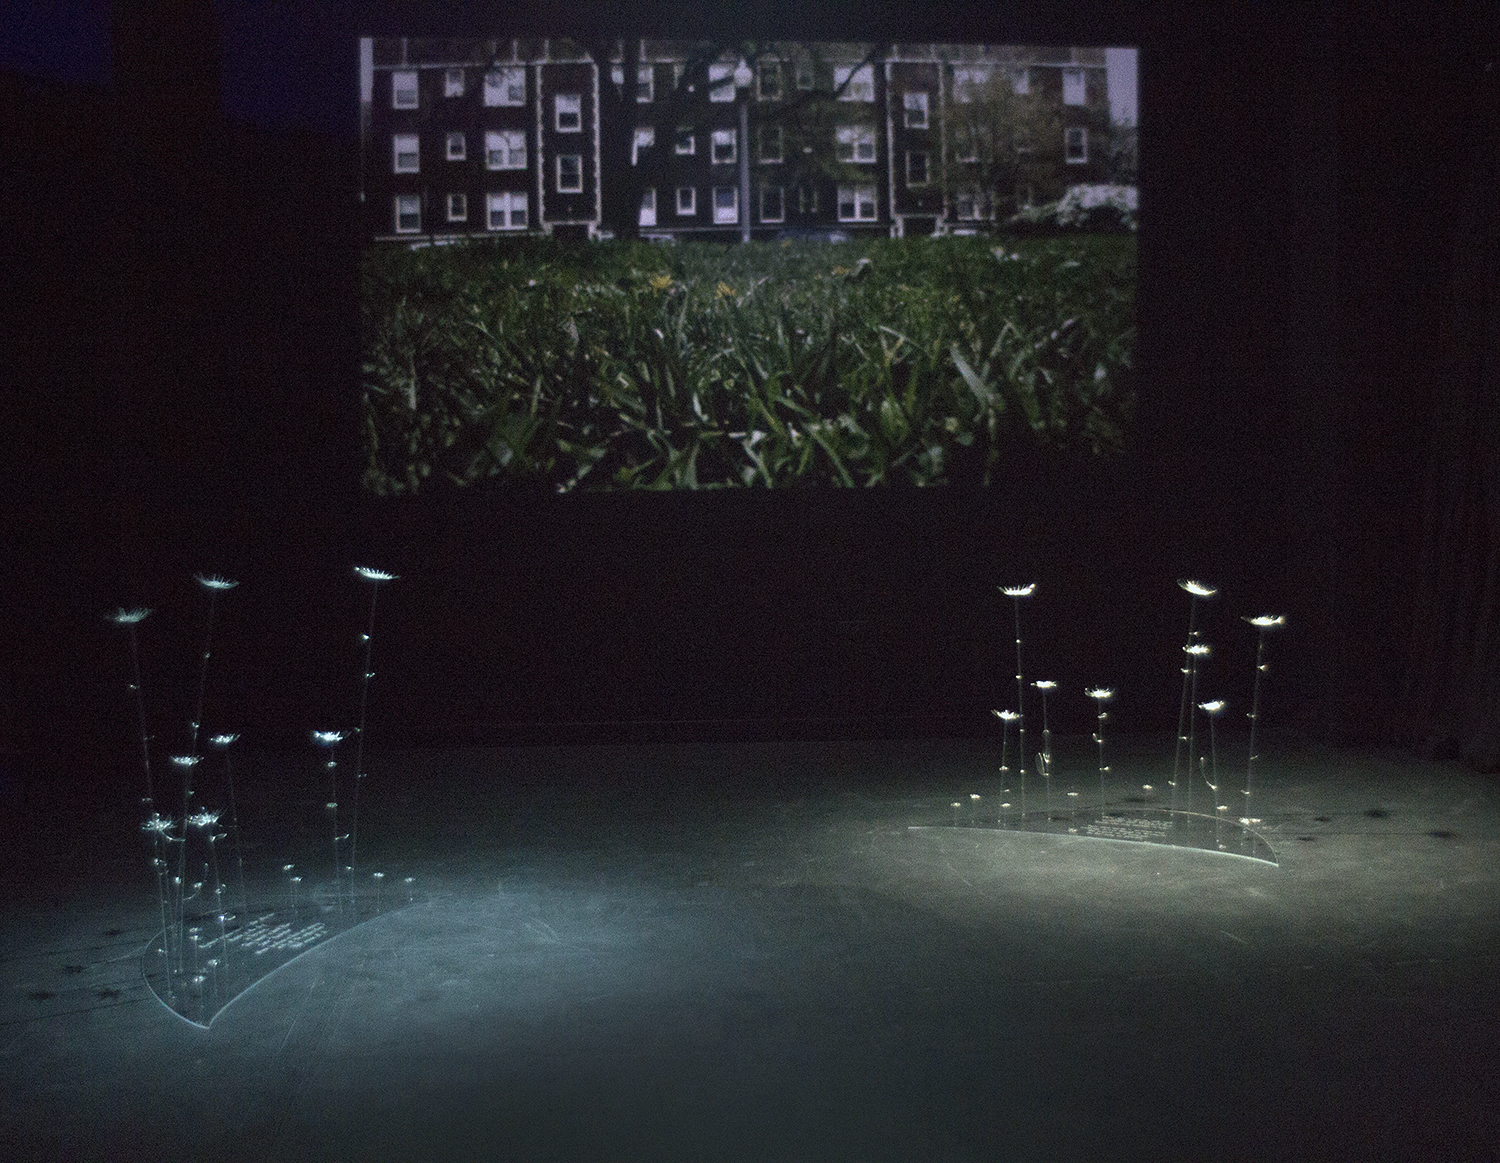 A view of one of the two rooms in the installation.